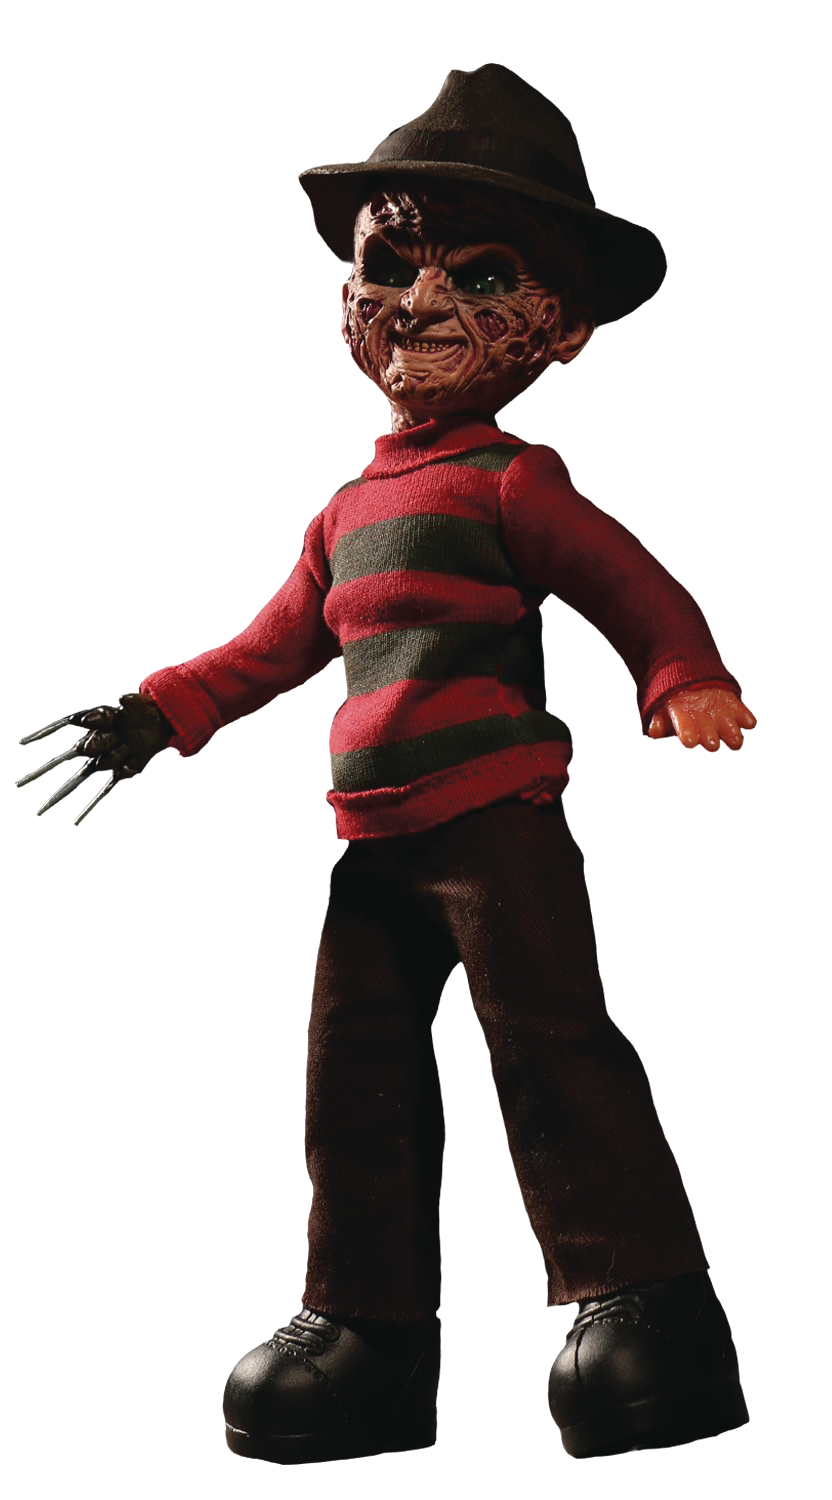 LDD NIGHTMARE ON ELM STREET FREDDY KRUEGER DOLL W/SOUND